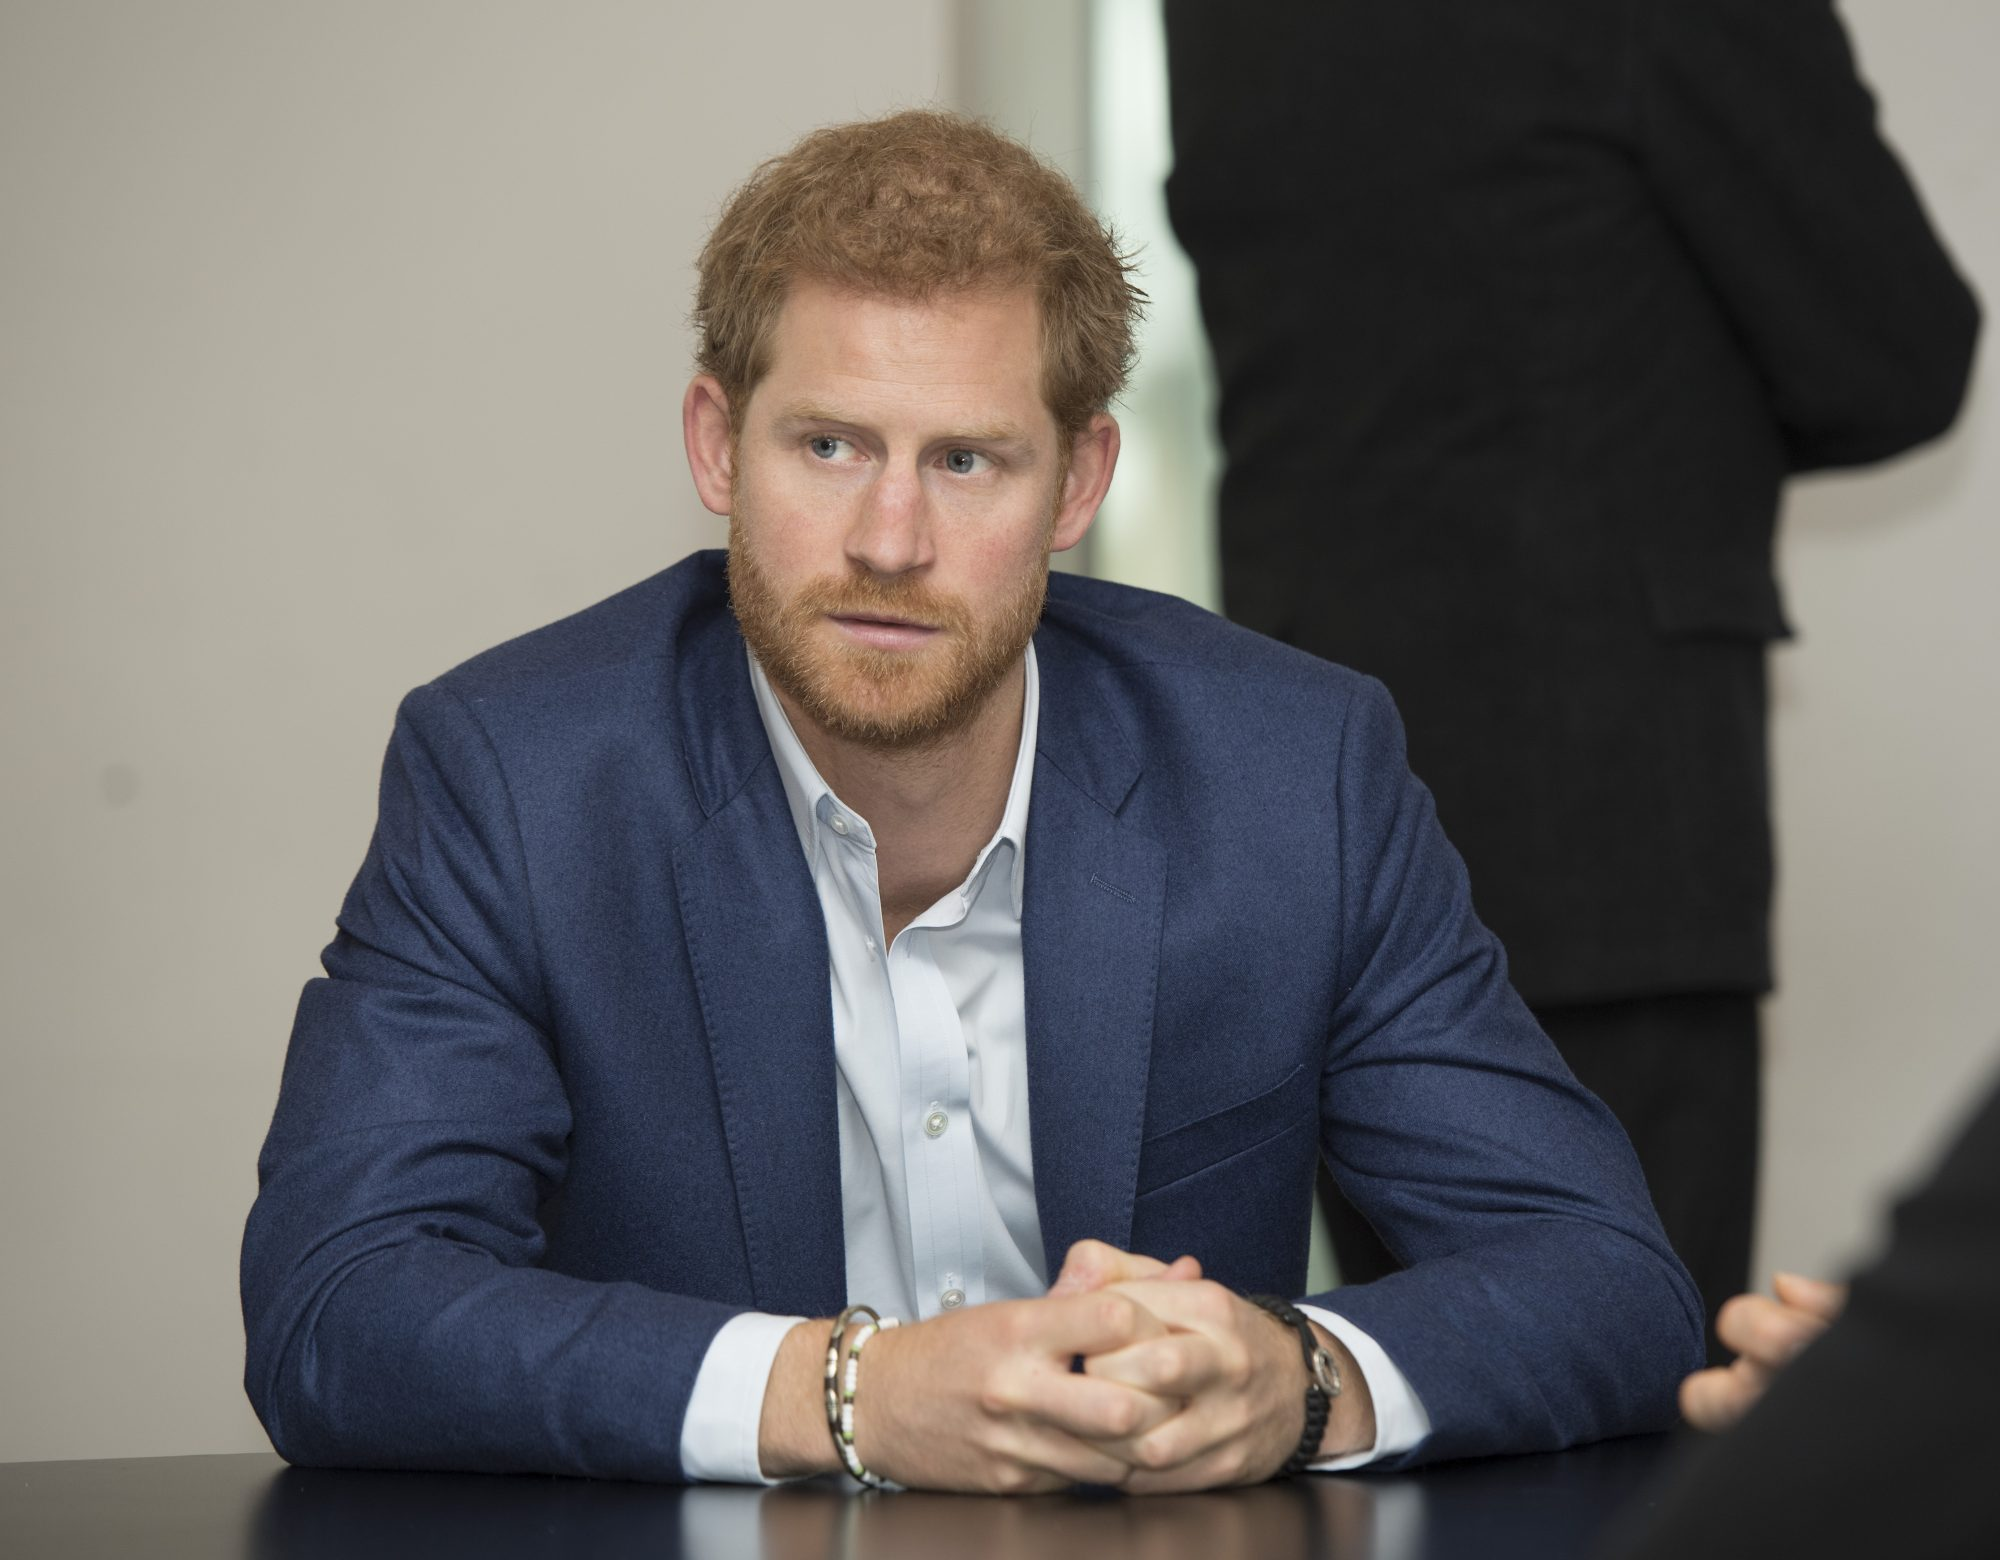 Prince Harry Likes His Bacon Cooked in a Very Specific Way